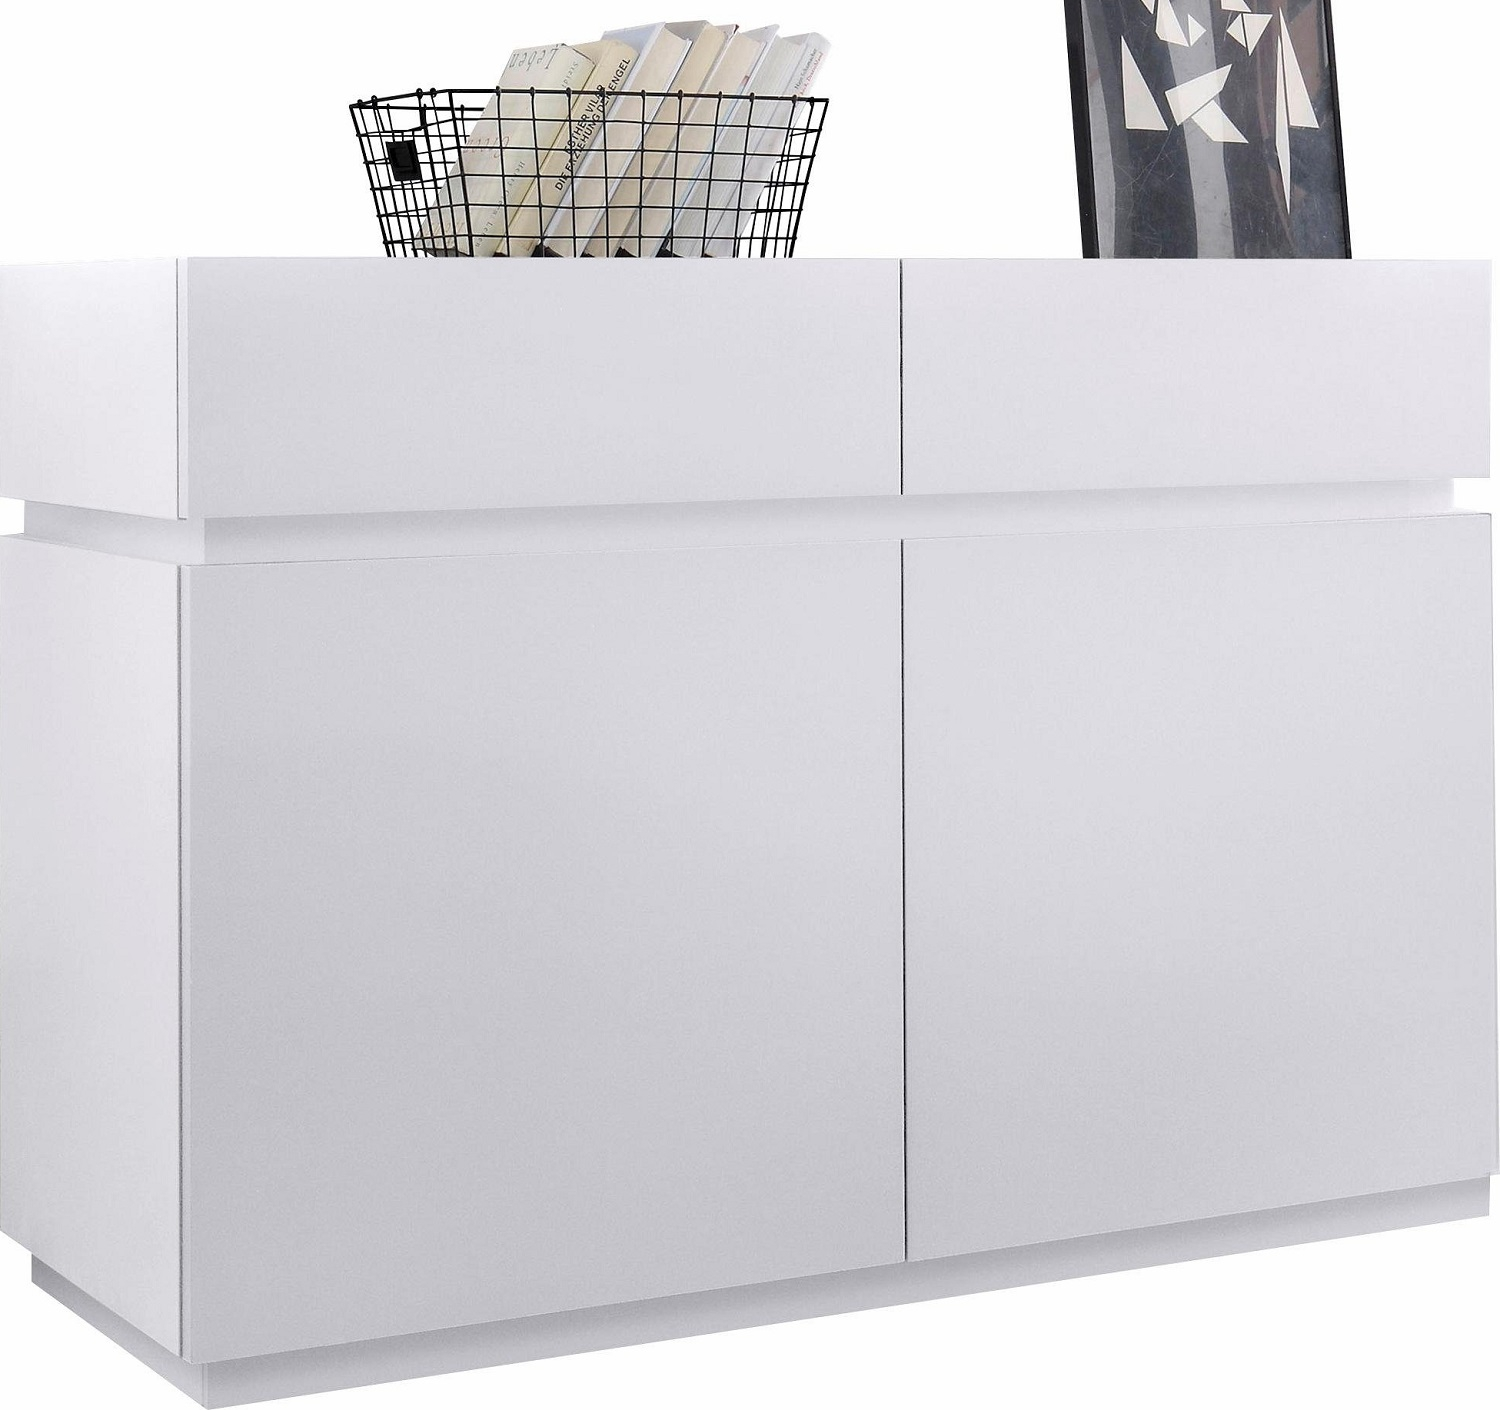 Dressoir Vespa 123 cm breed – mat wit